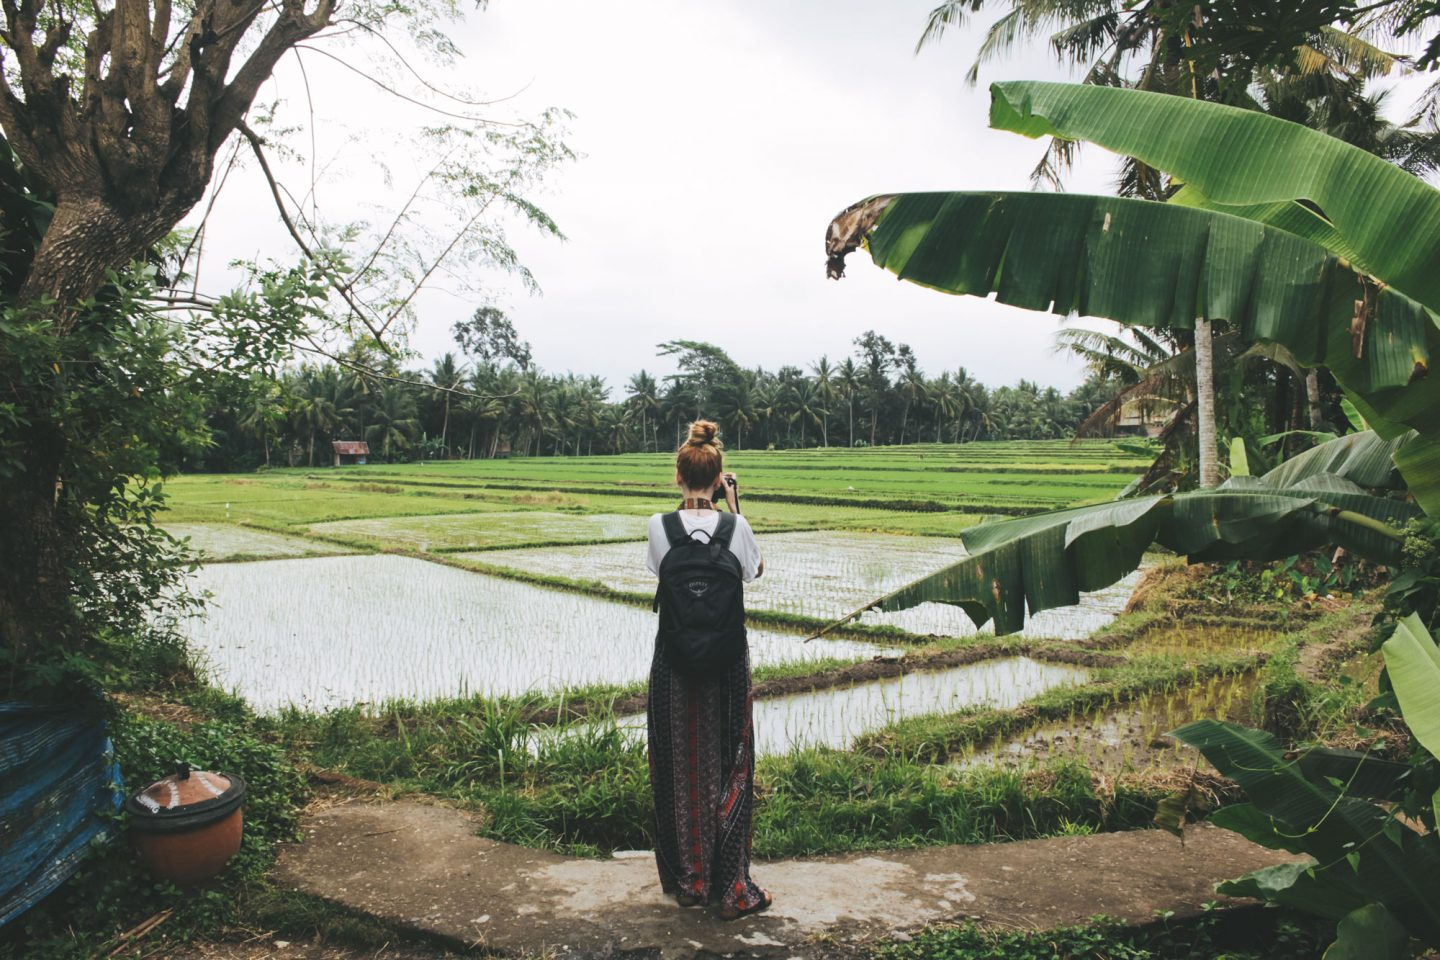 Ubud Palace & Rice Fields